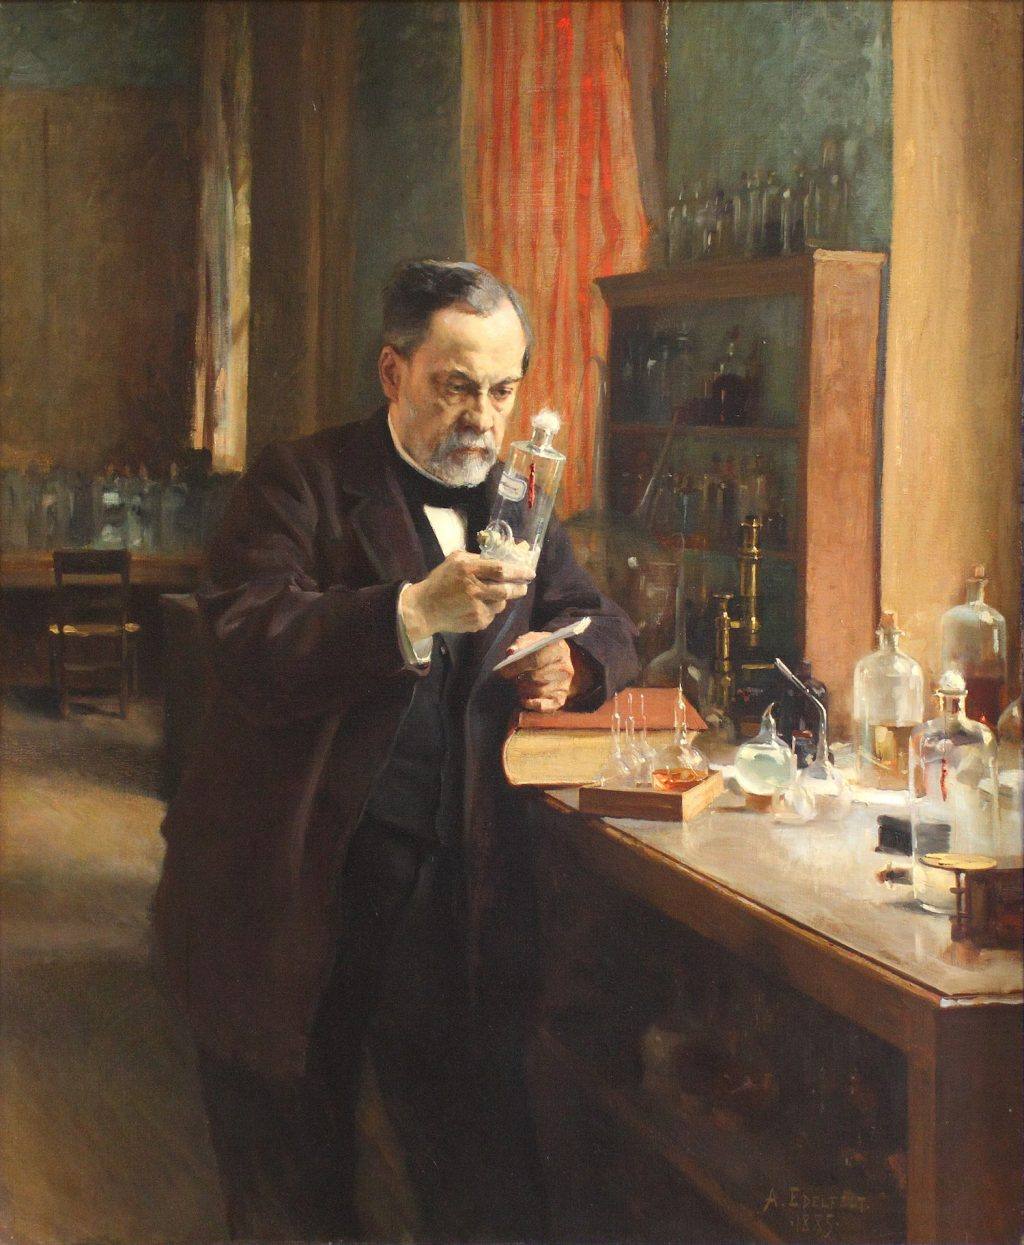 Louis Pasteur at work